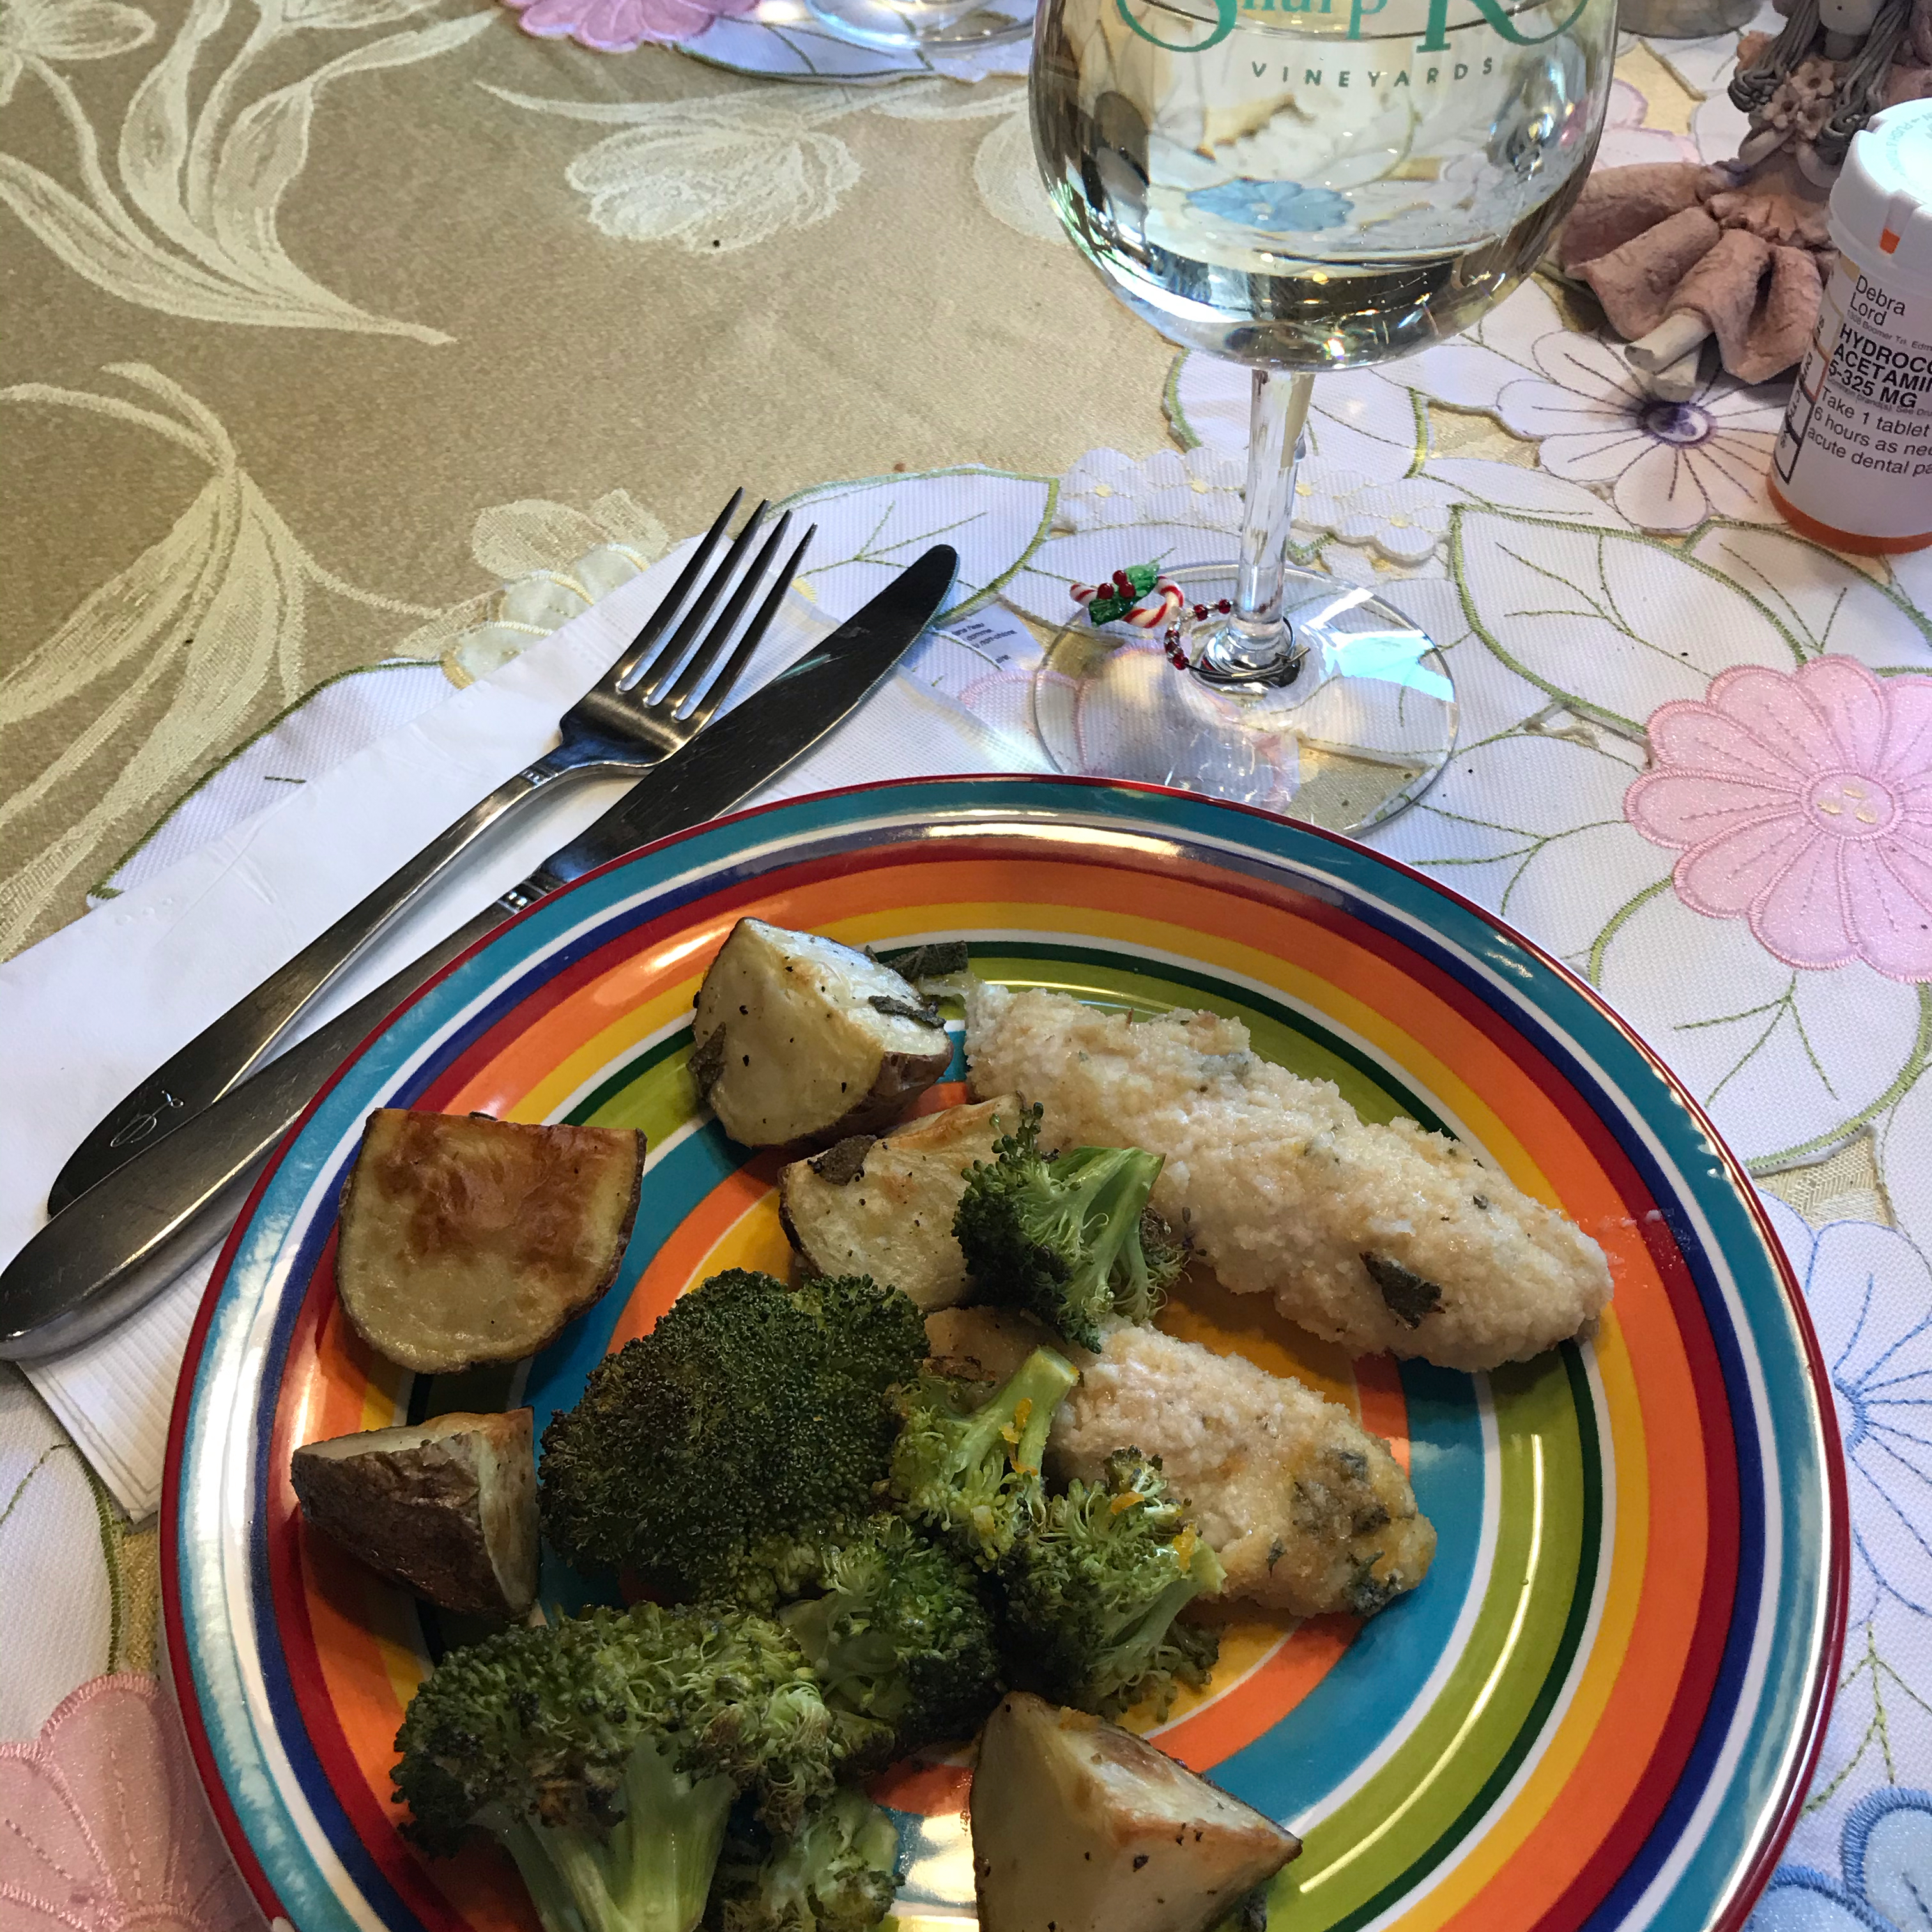 Sheet Pan Citrus and Sage Chicken with Roasted Broccoli and Potatoes